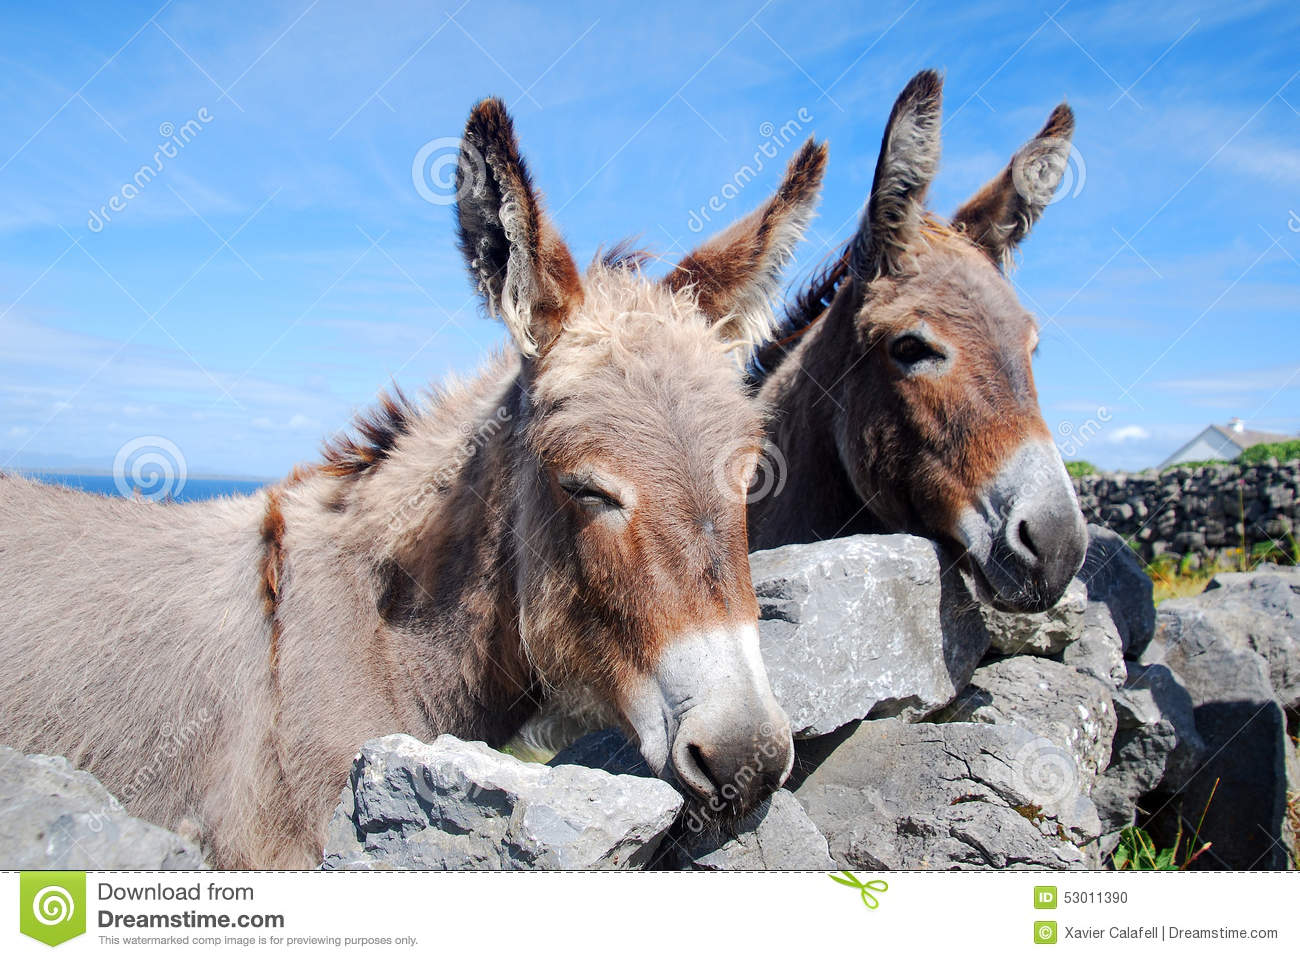 Two Irish Donkeys looking over a wall